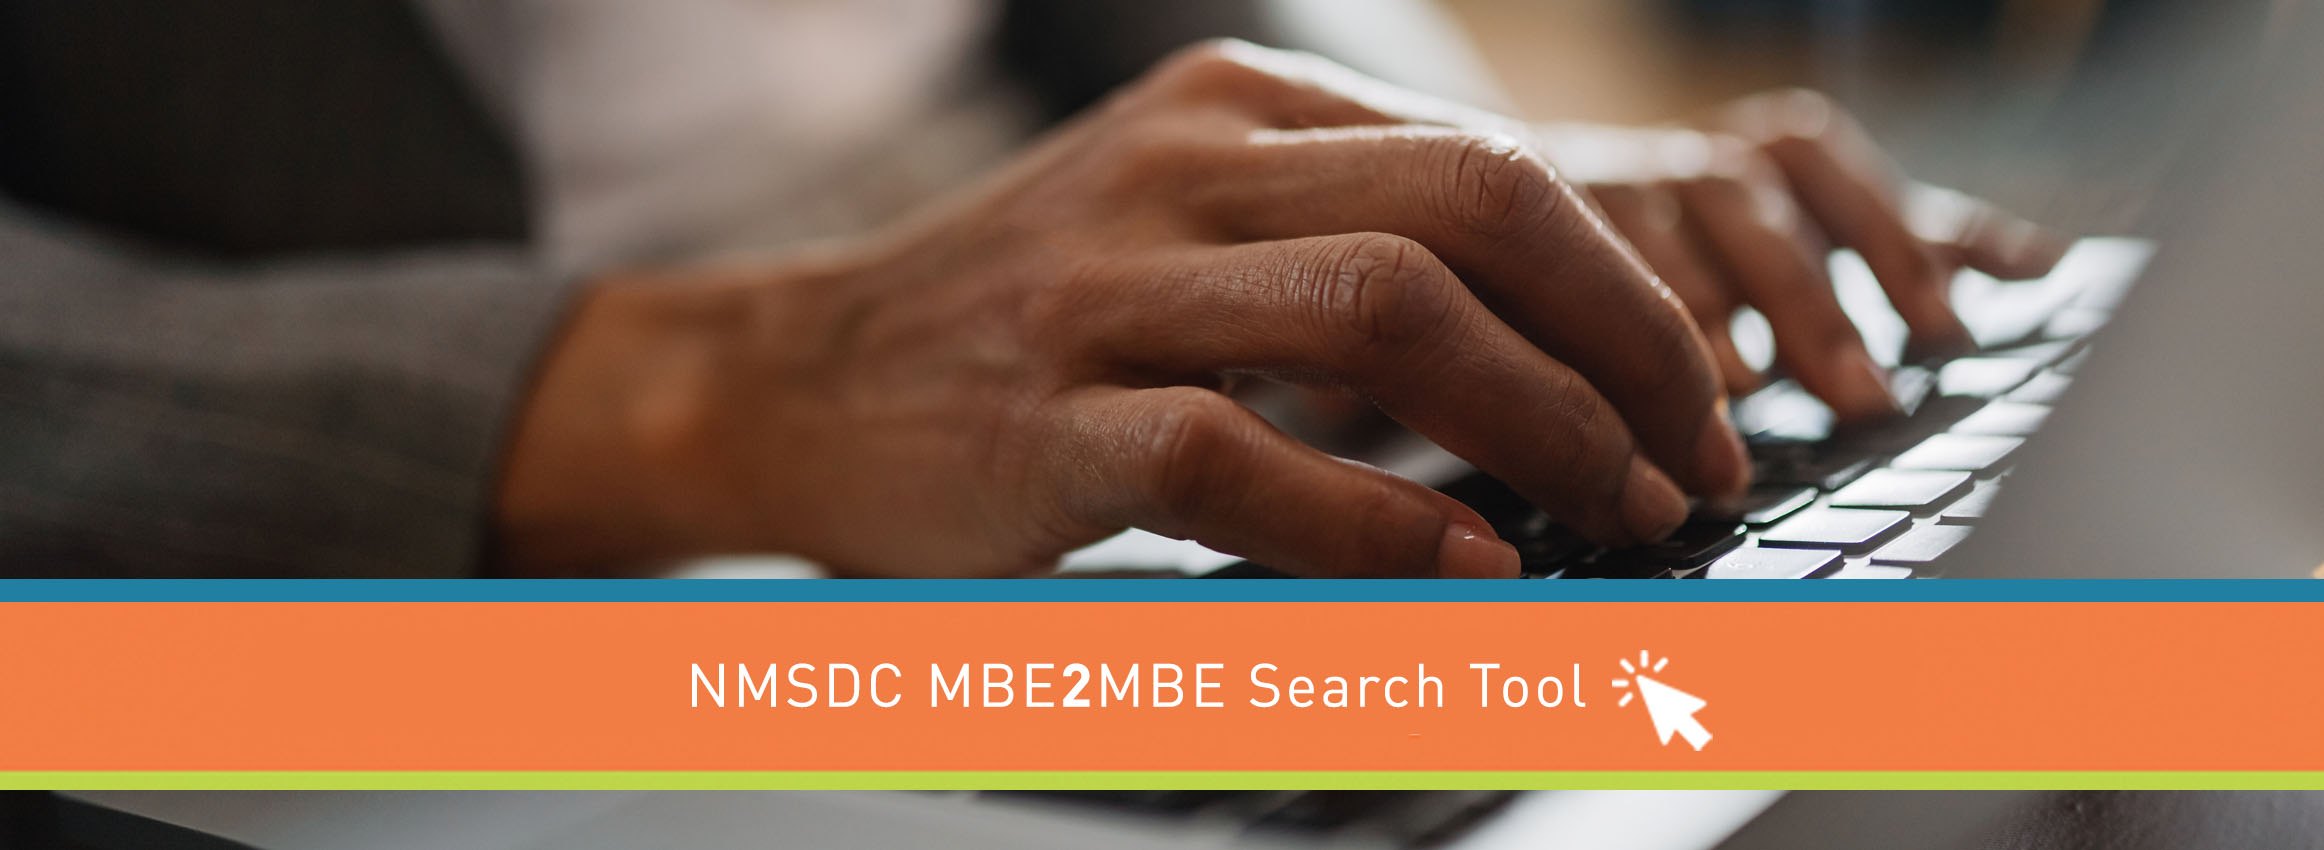 NMSDC MBE2MBE